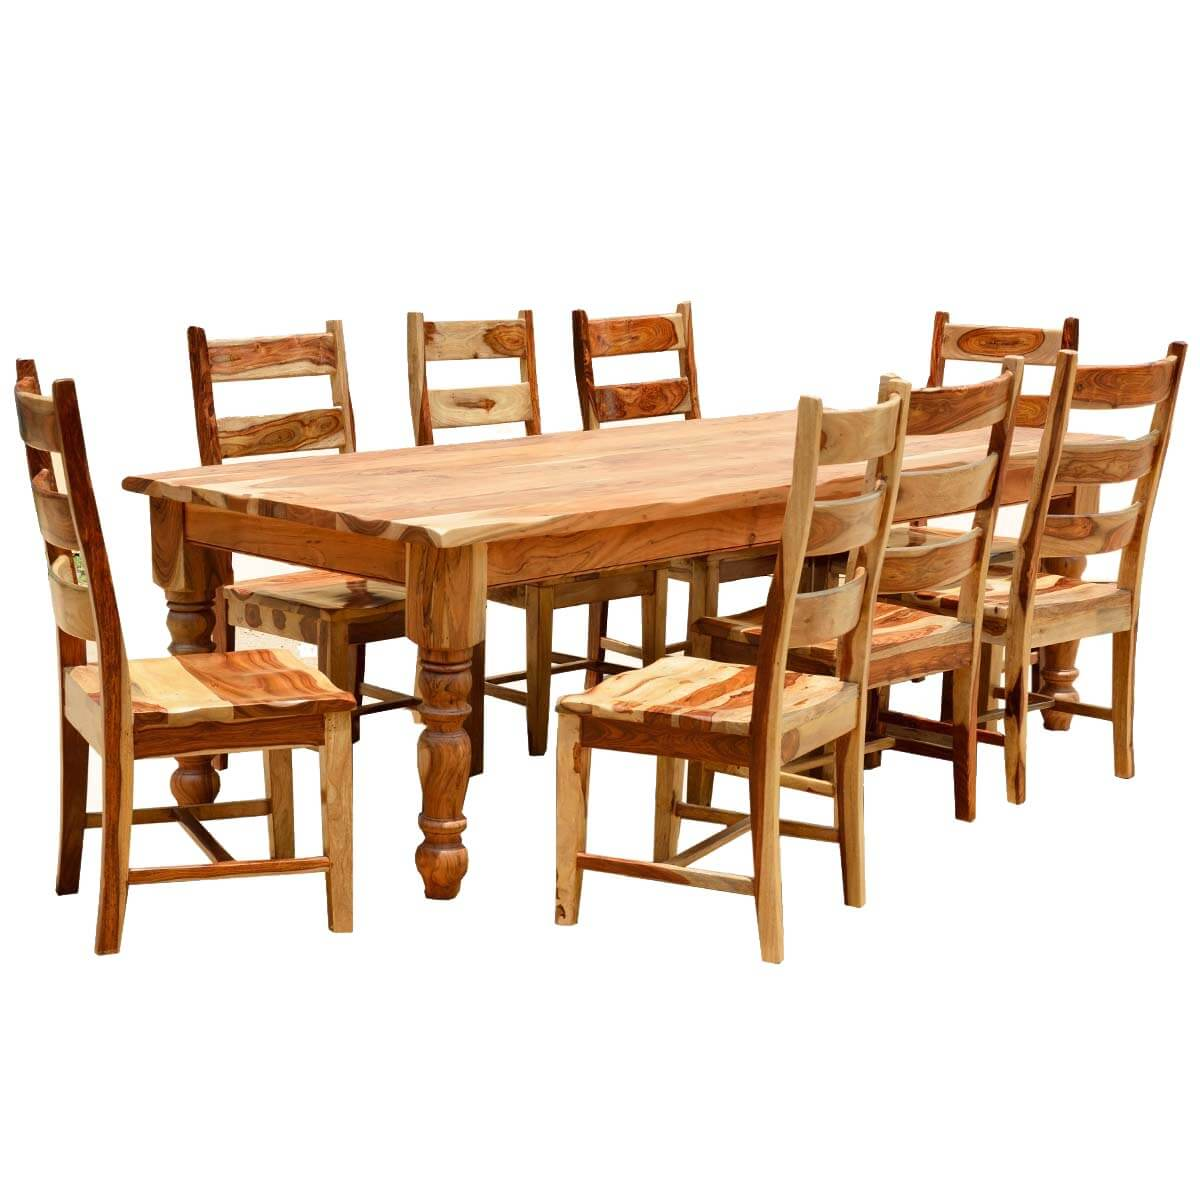 Rustic solid wood farmhouse dining room table chair set for Solid wood dining table sets